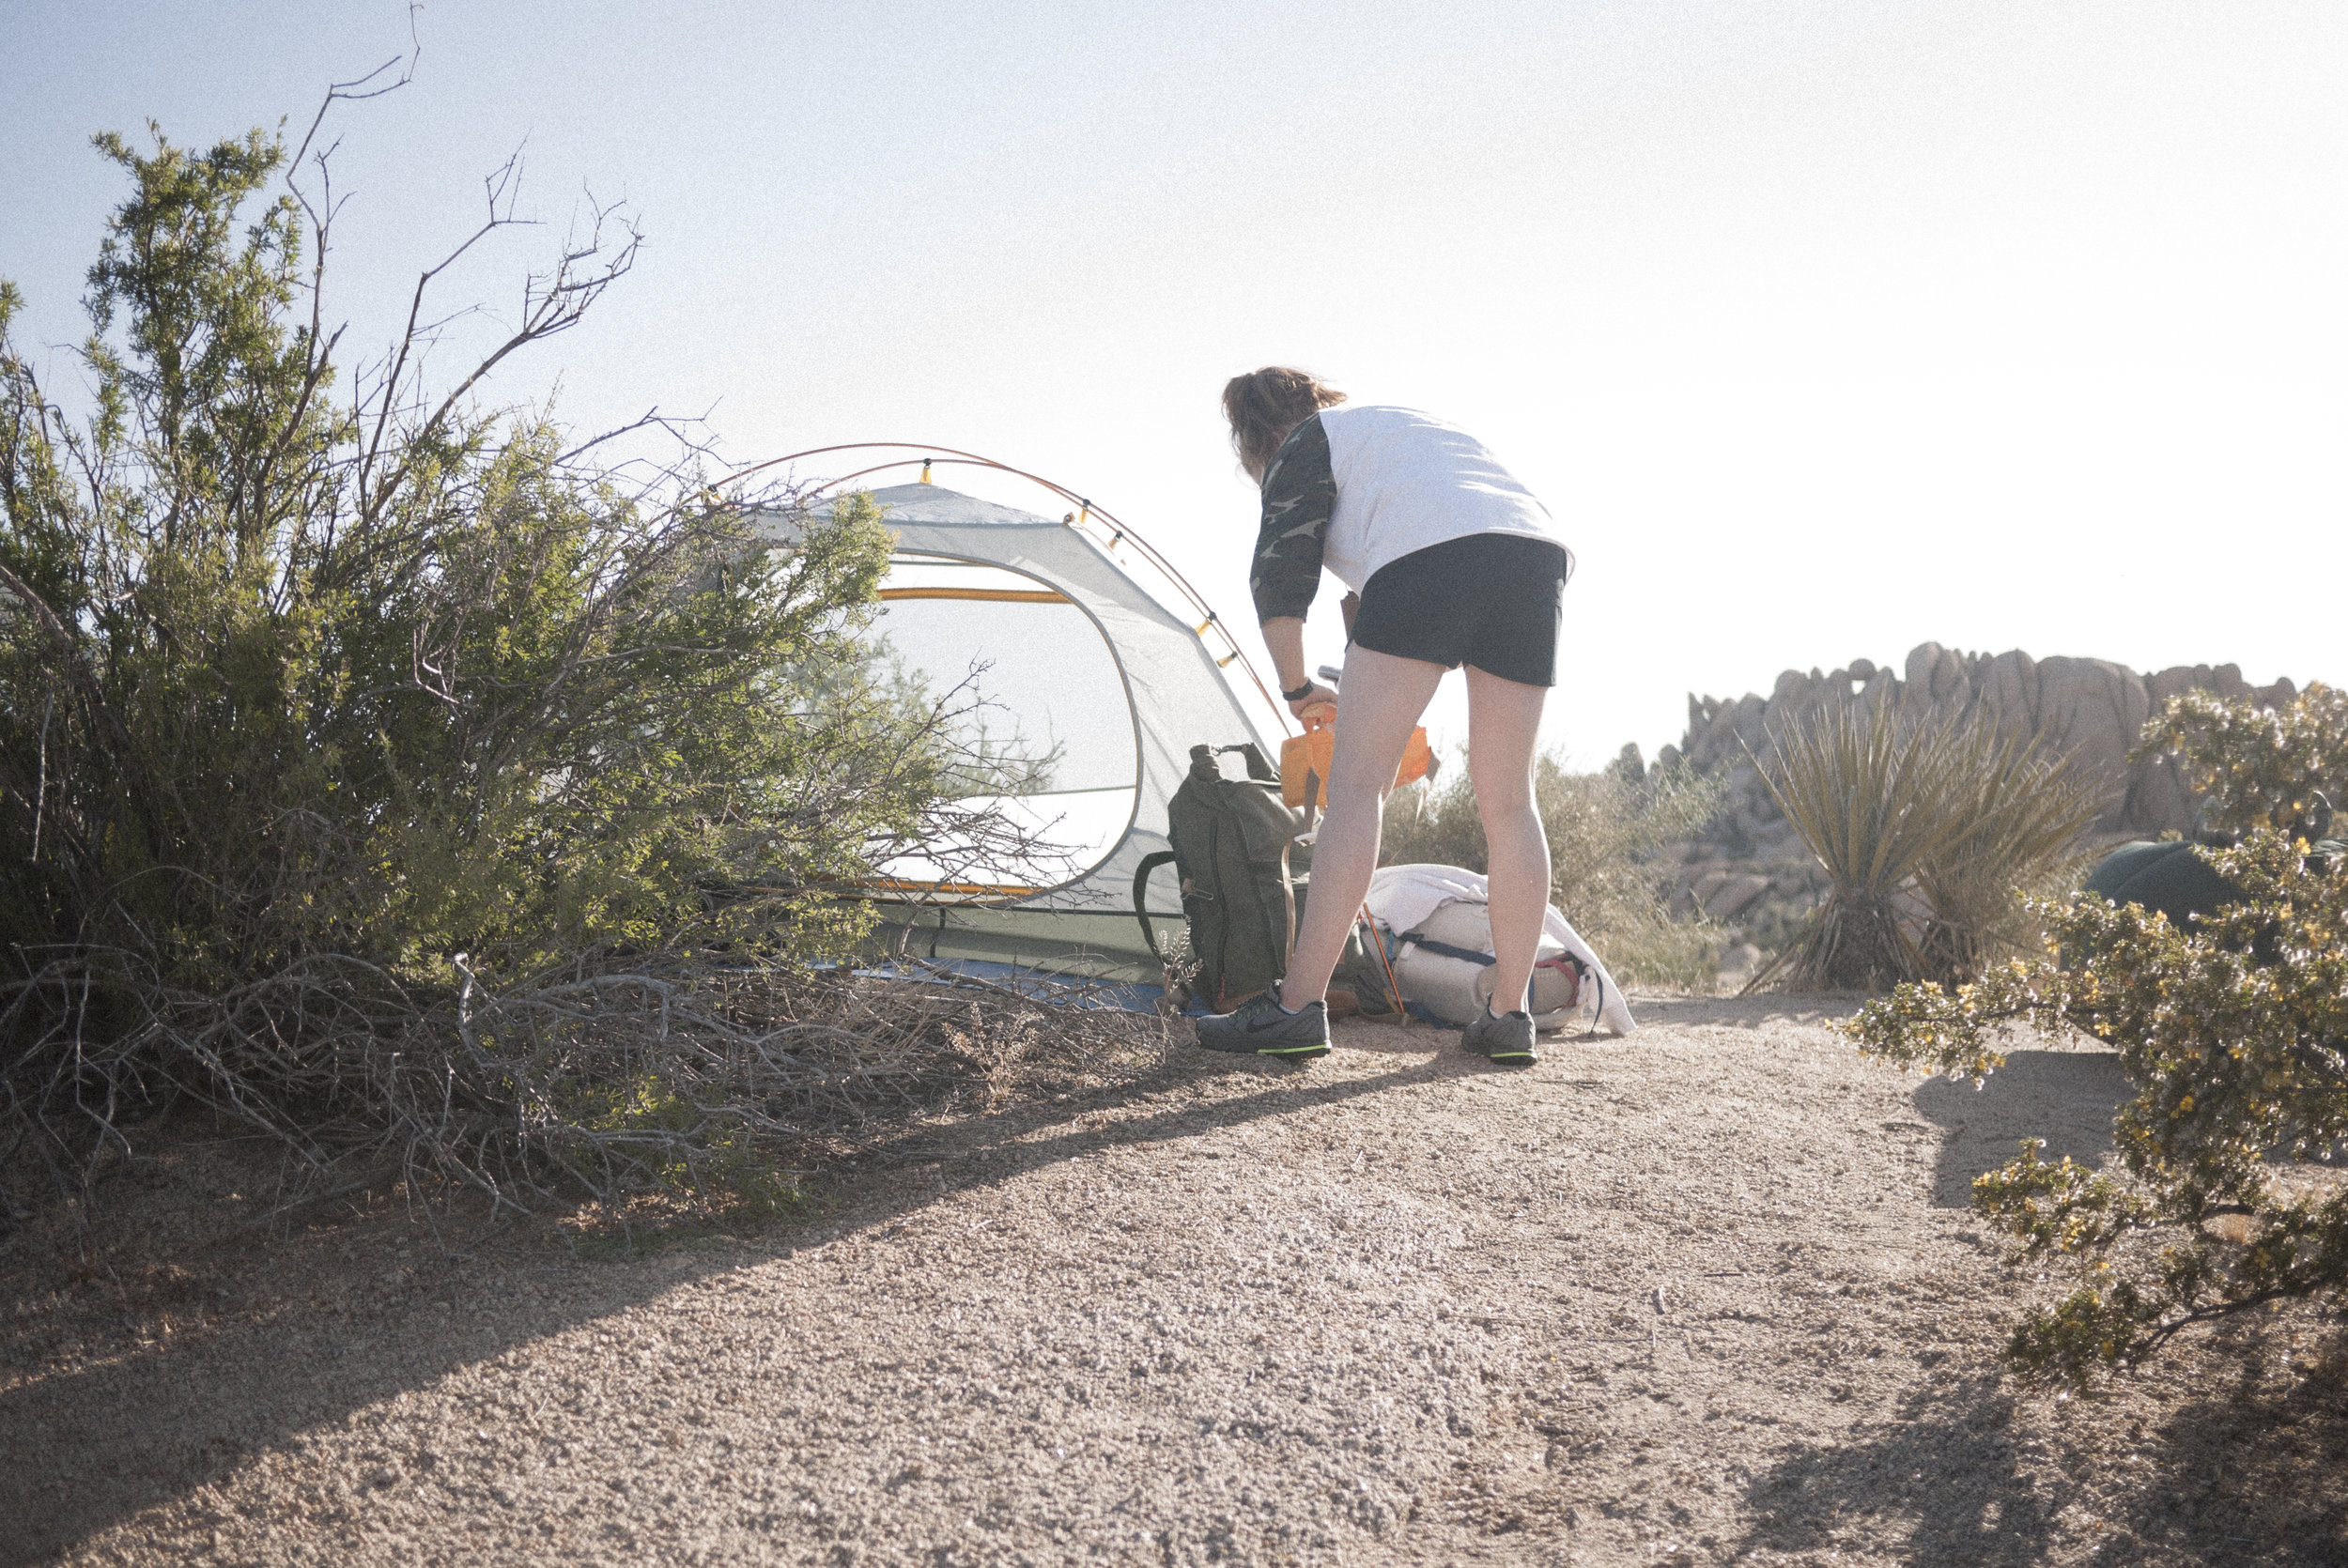 Packing the RV sling and Kit Rucksack for a day of exploring